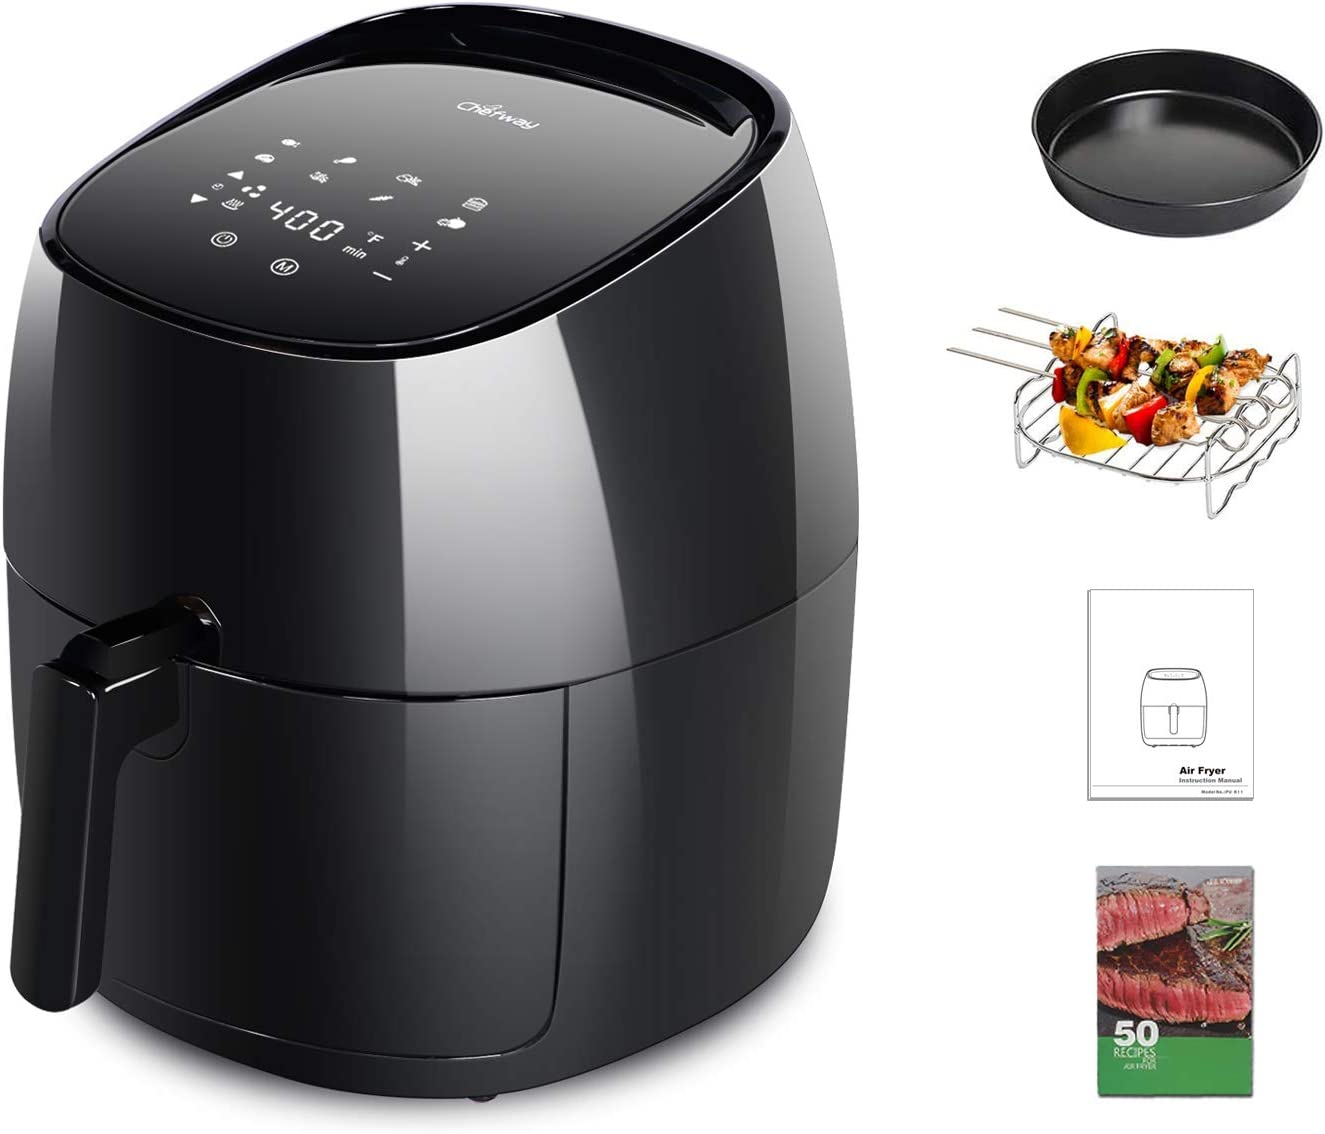 Chefway Air Fryer, 7.5 Quart Electric Hot Air Fryers Oven Oilless Cooker with LCD Digital Screen and Nonstick Frying Pot,1700W 8 in 1 Large Fast Hot Oven & Oiless Cooker,Fry/Roast/Bake/Dehydrate,50 Recipe Cookbook, Black